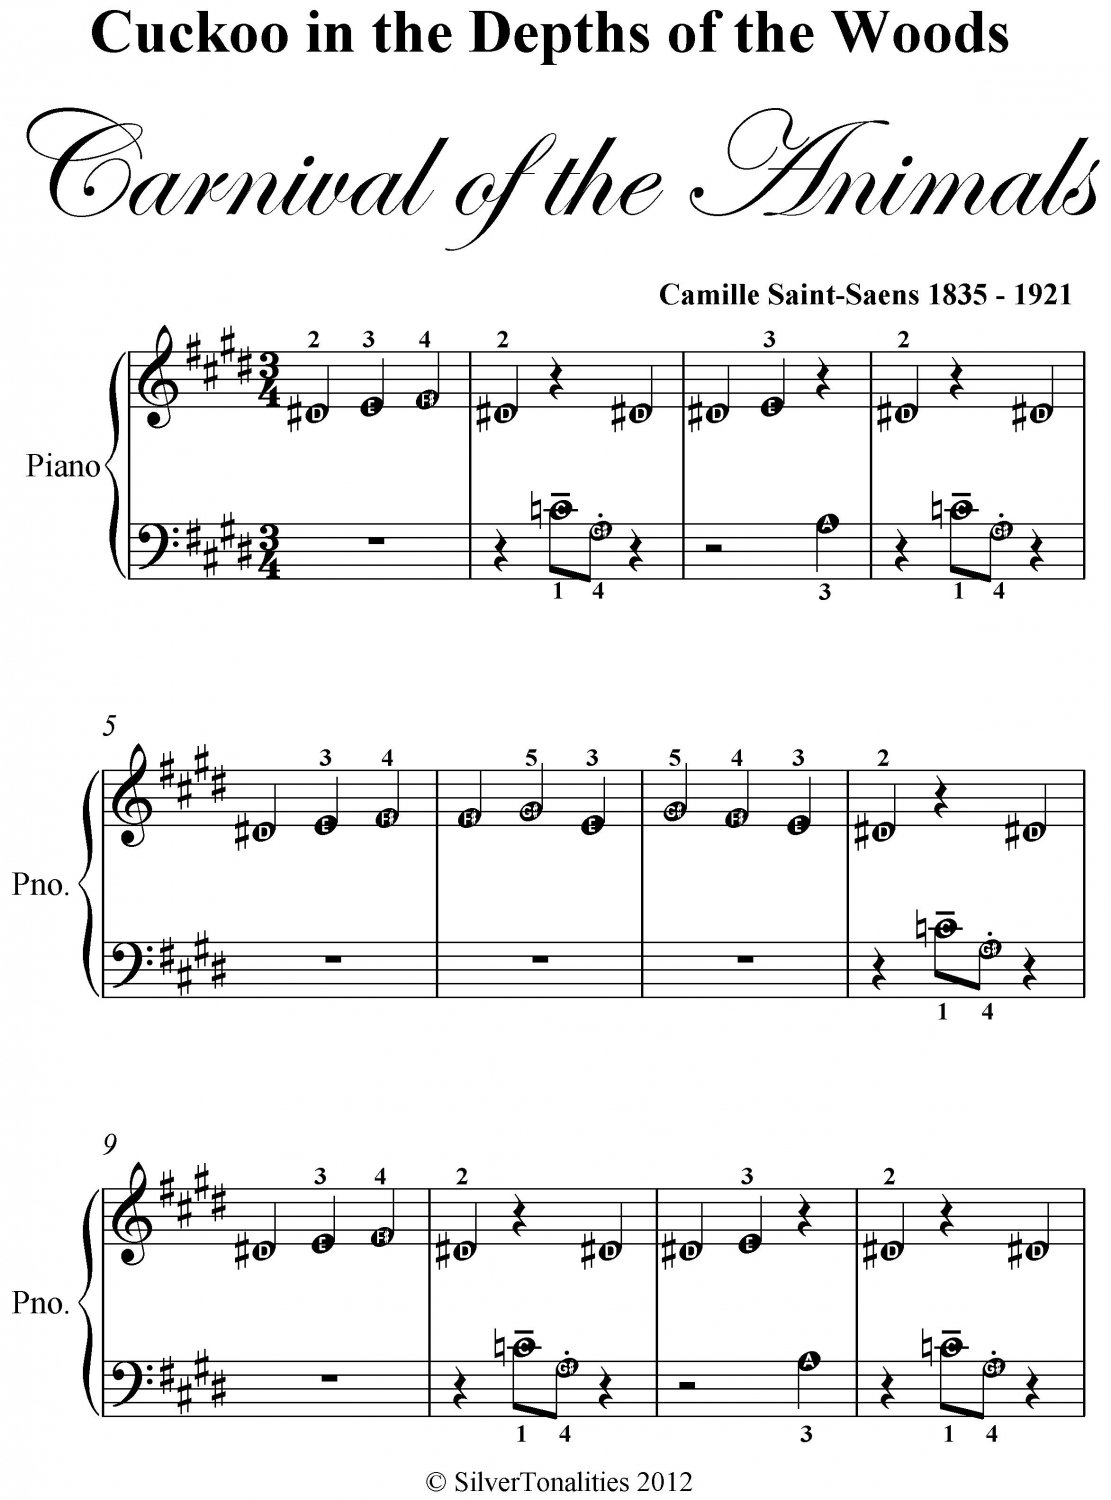 Cuckoo In the Depths of the Woods Carnival of the Animals Beginner Piano Sheet Music PDF